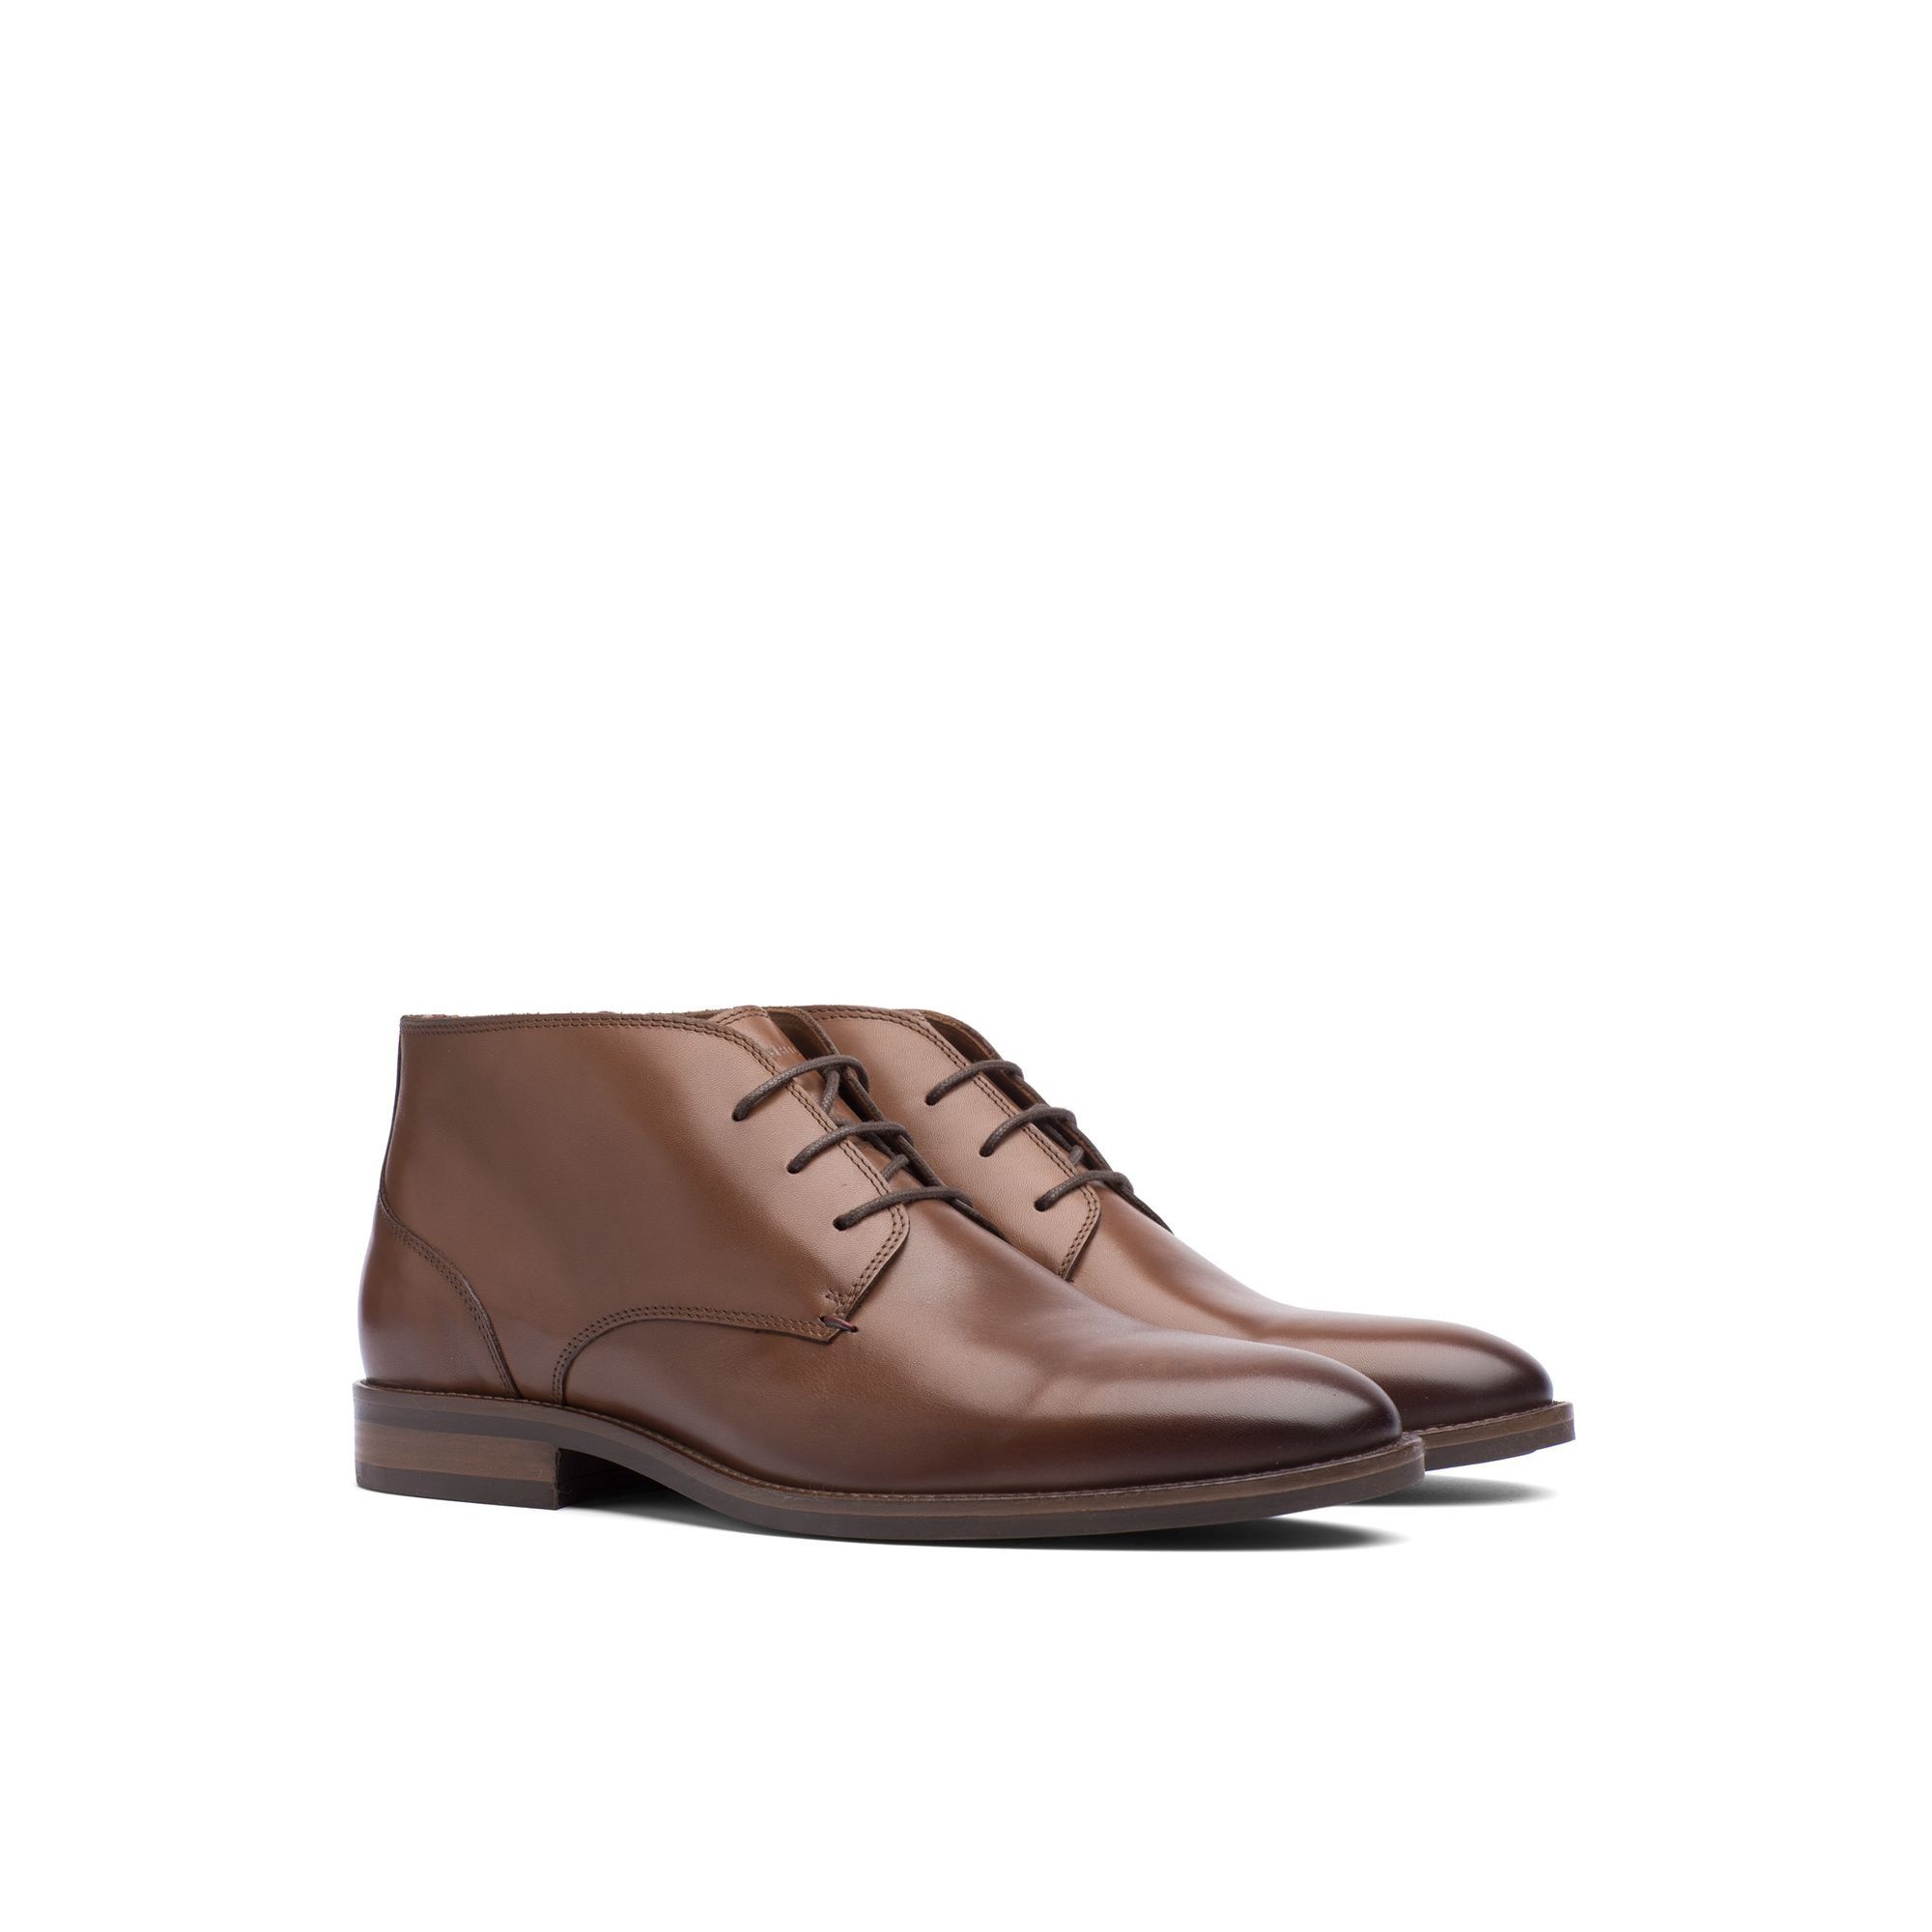 533c6e3d6a24b2 TOMMY HILFIGER LEATHER ANKLE BOOT - WINTER COGNAC.  tommyhilfiger  shoes